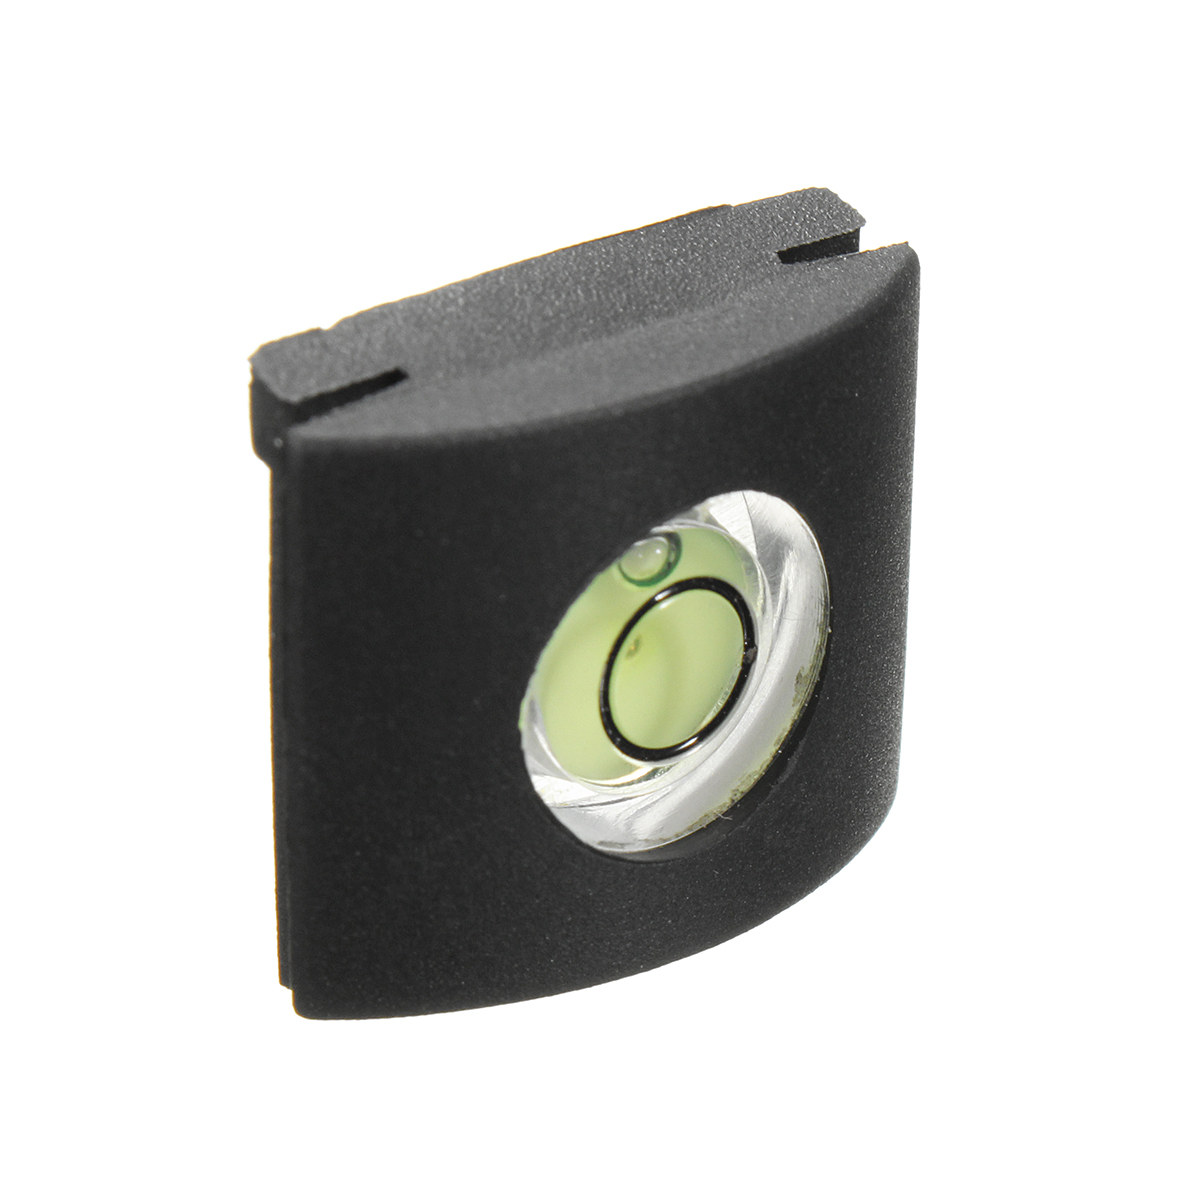 Camera De Surveillance Exterieur Sans Fil Blink Flash Cover Cap Bubble Spirit Level For Canon For Nikon For Pentax